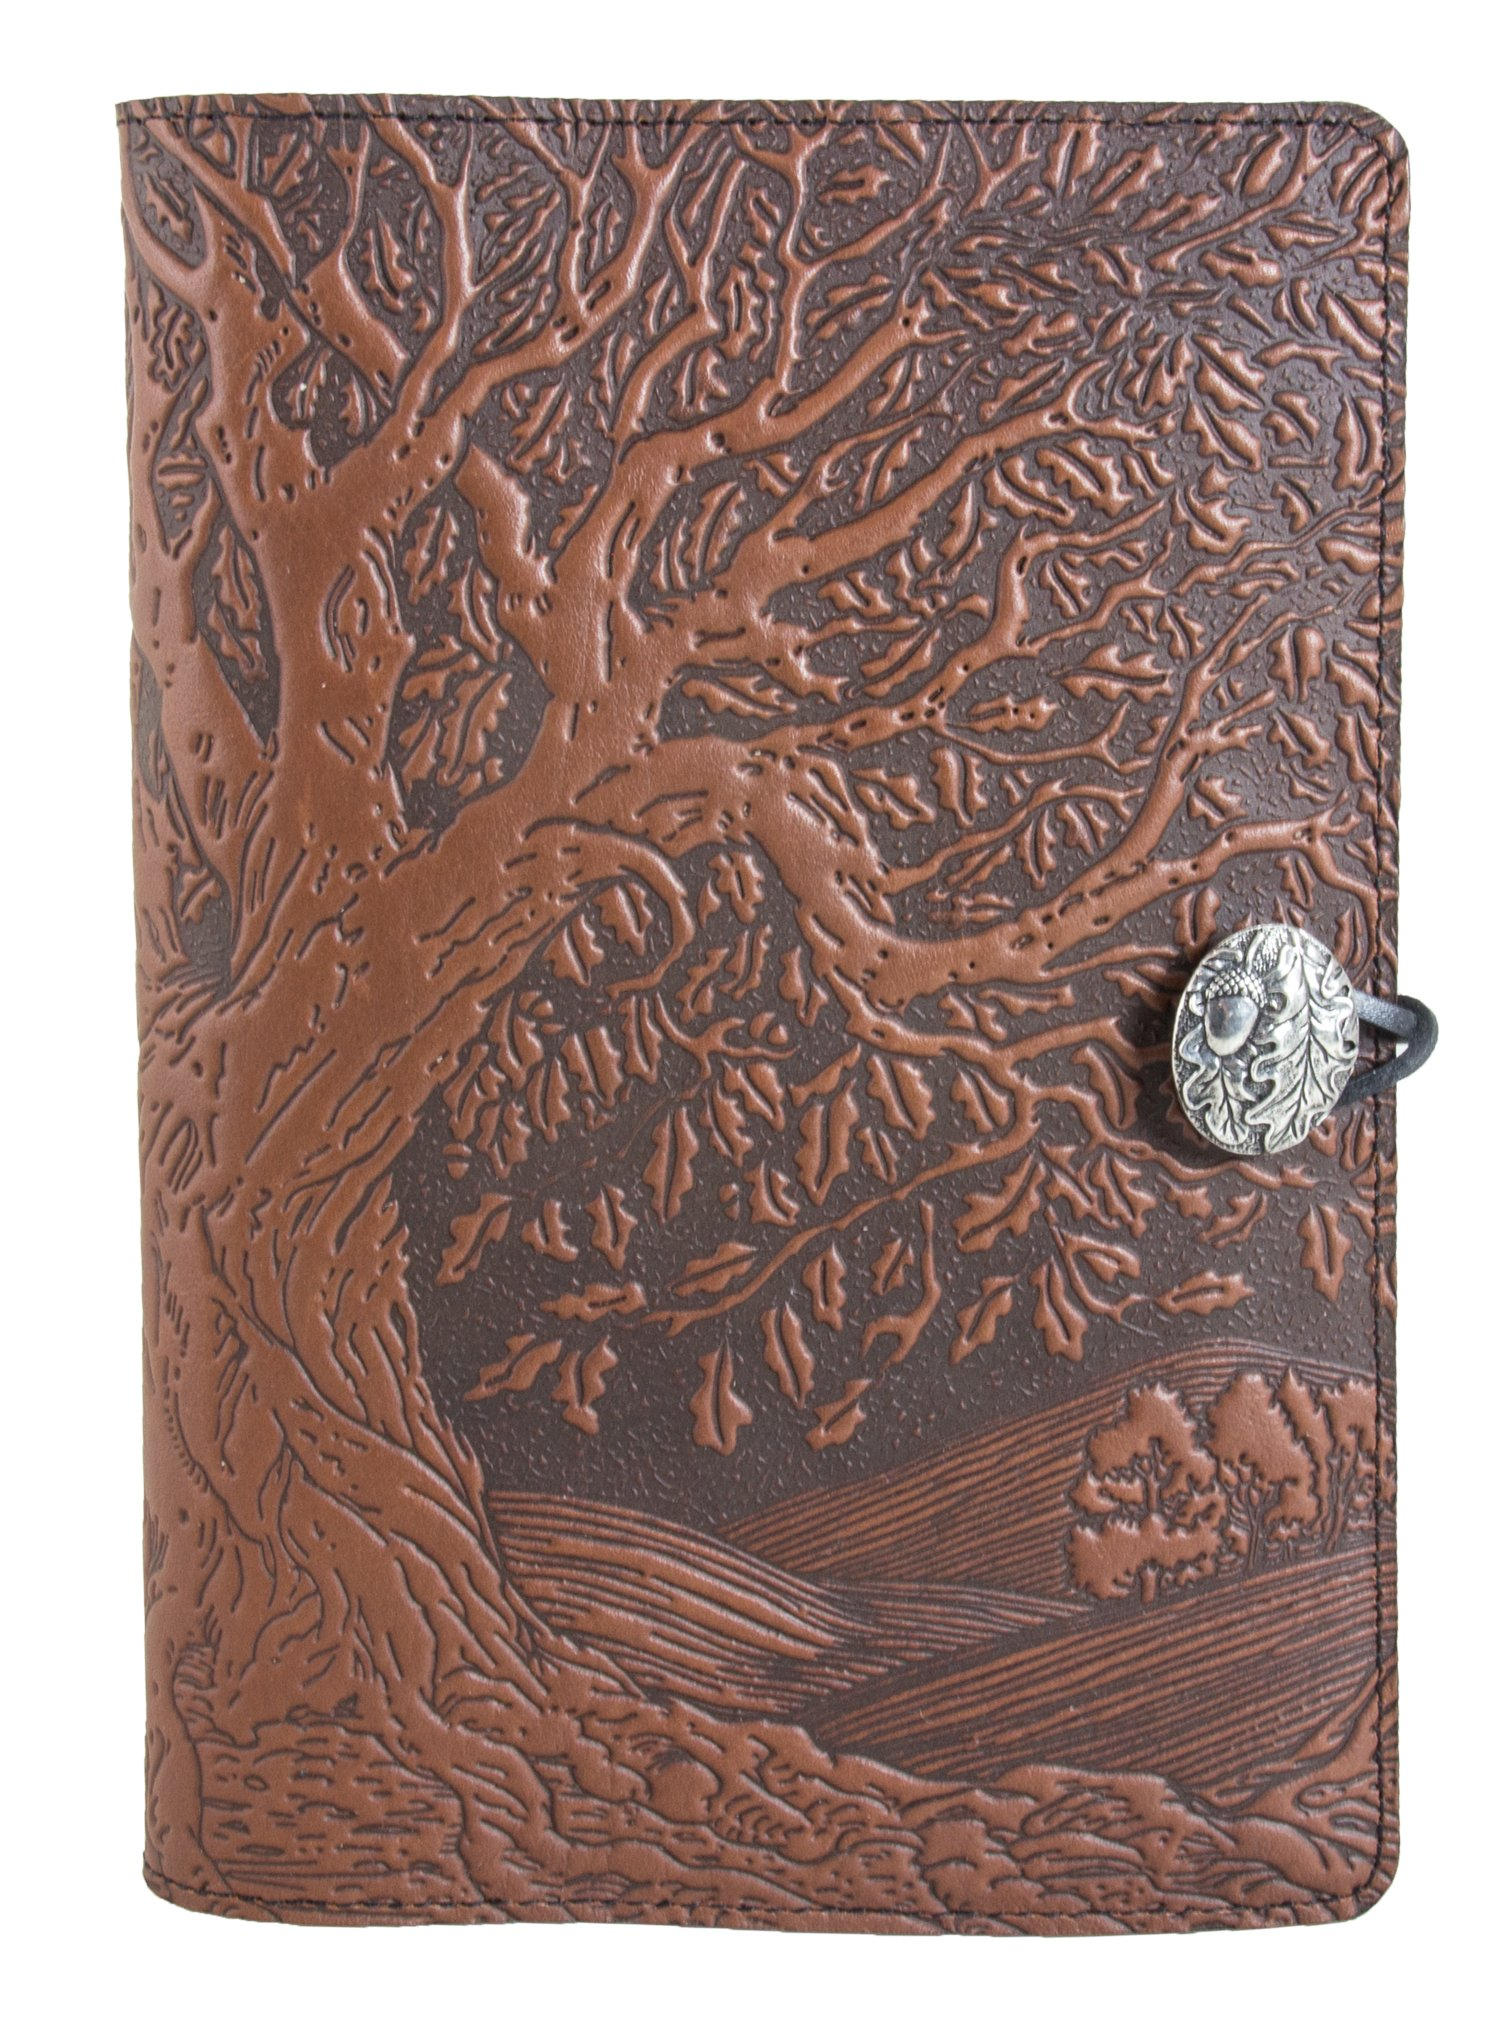 Genuine Leather Refillable Journal Cover with a Hardbound Blank Insert, 6x9 Inches, Tree of Life, Saddle with a Pewter Button, Made in the USA by Oberon Design by Oberon Design (Image #3)